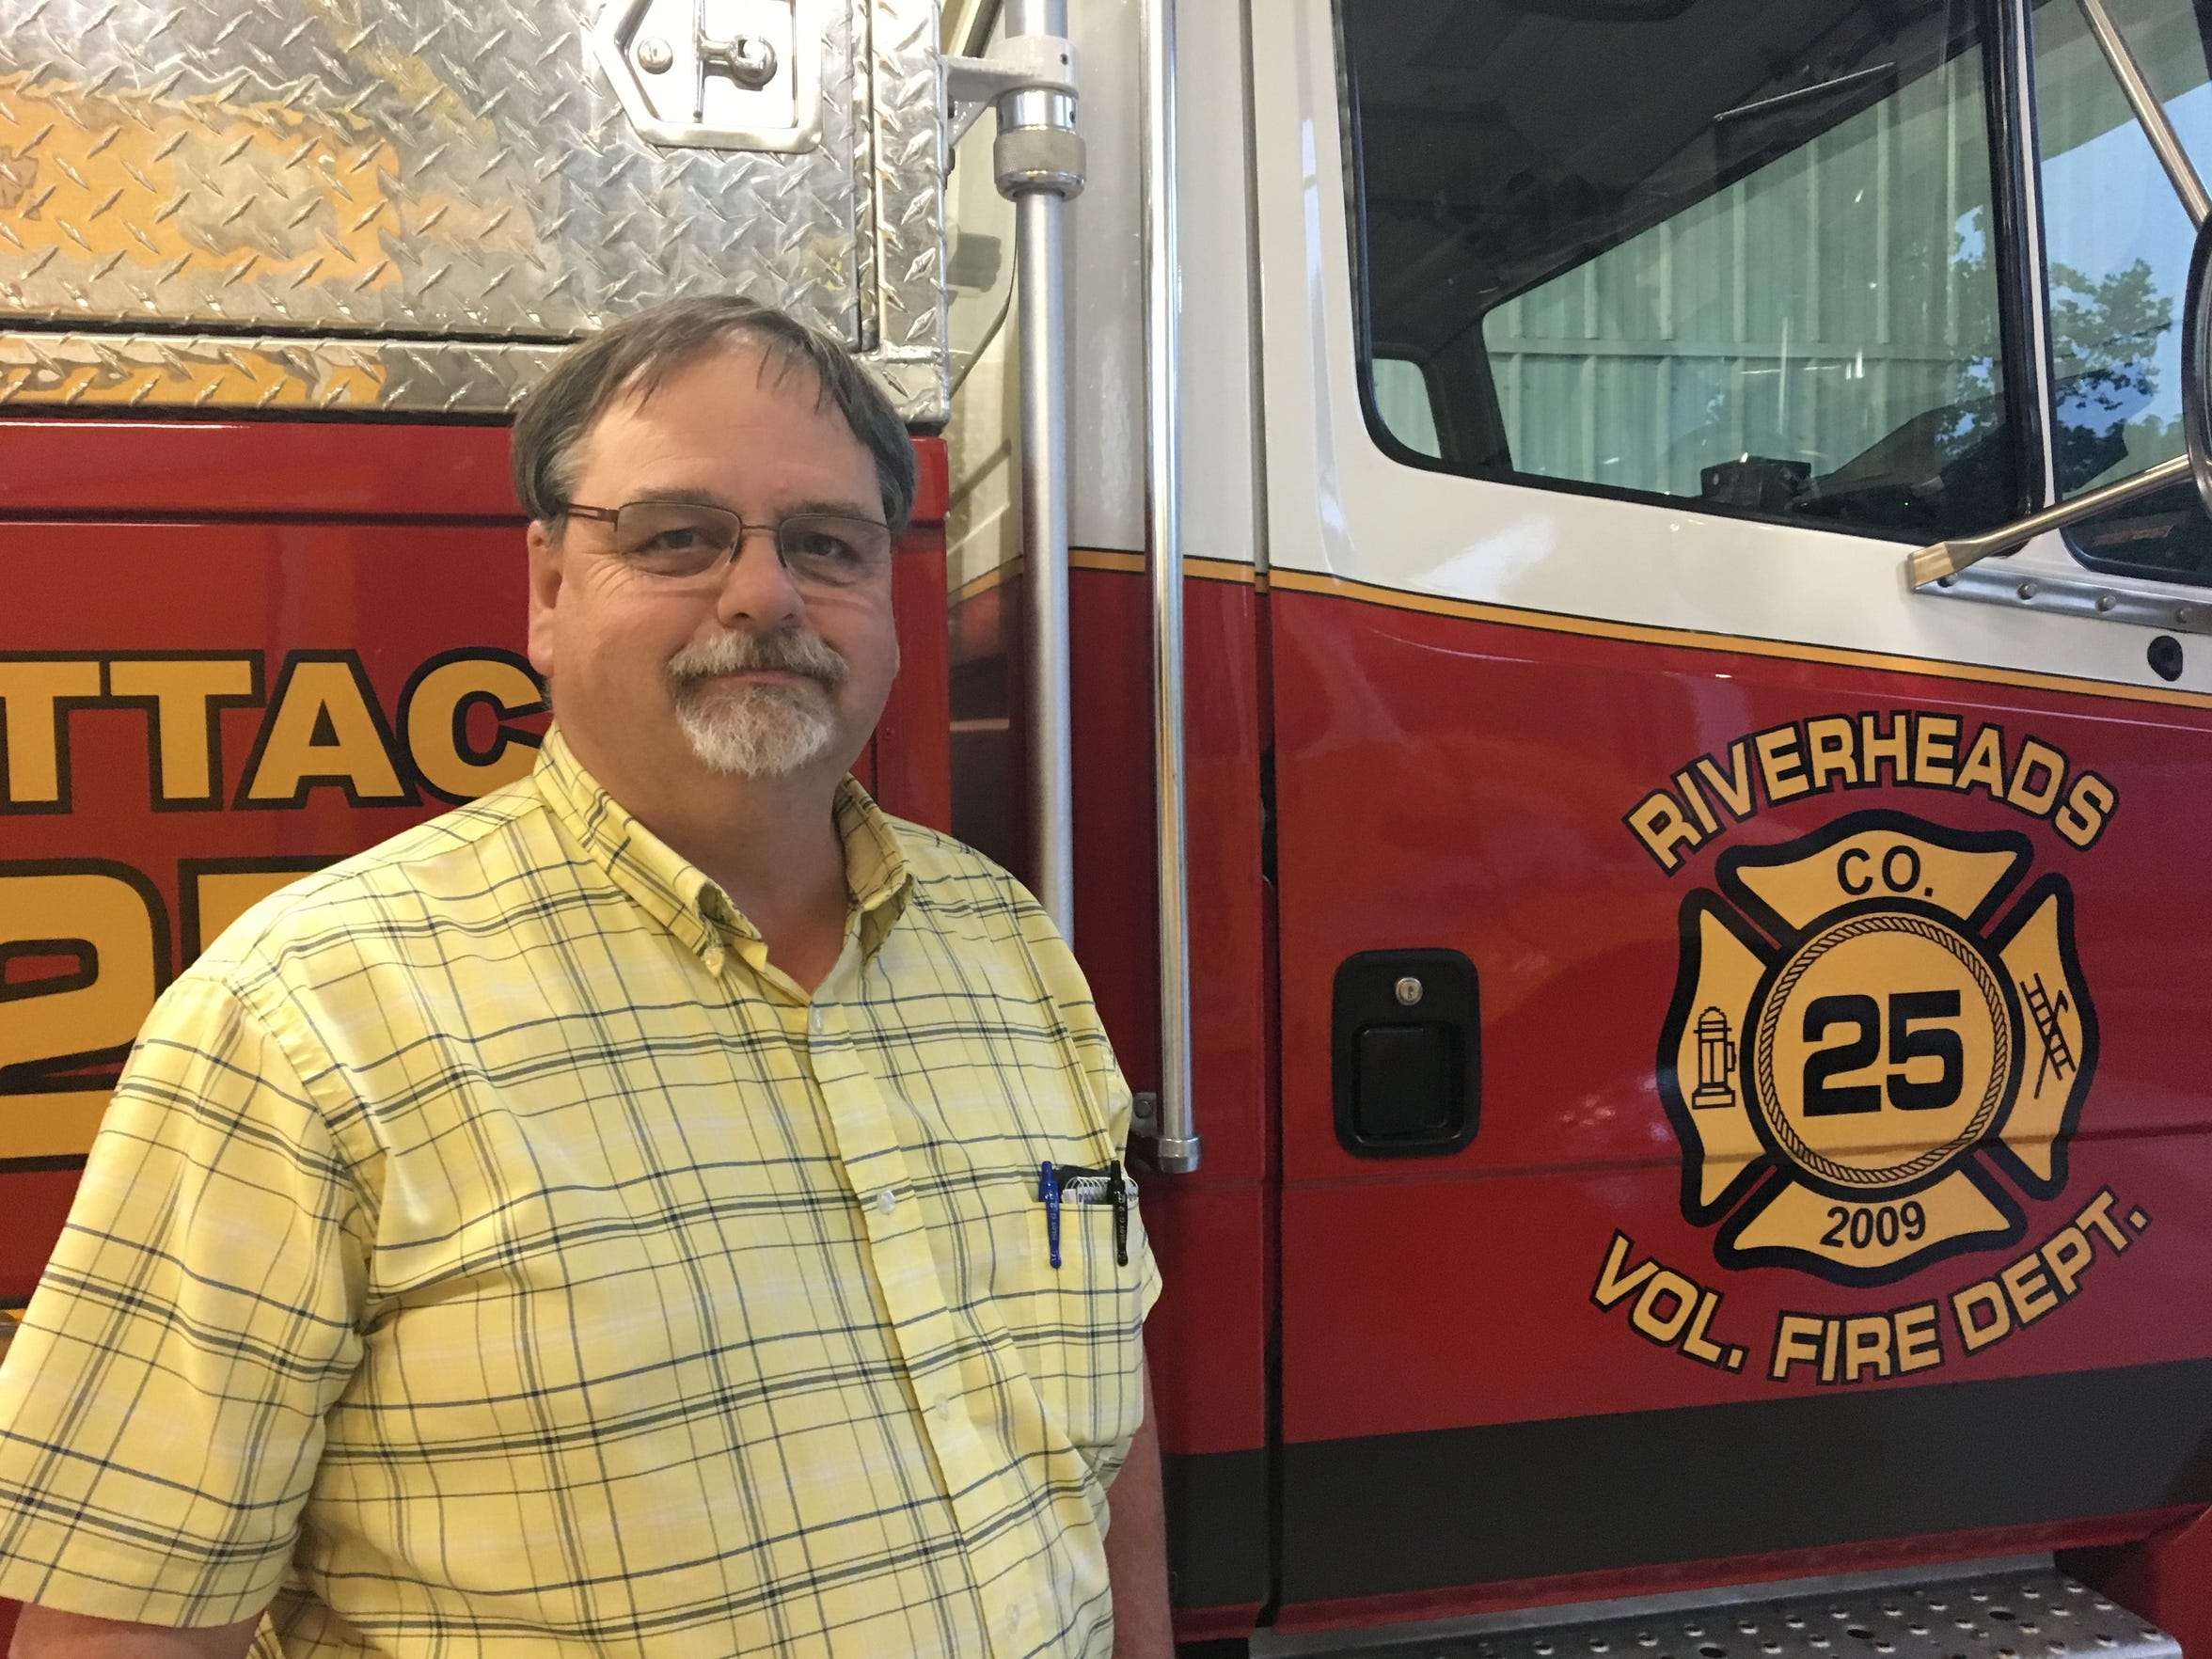 Riverheads Volunteer Fire Department Chief Barry Lotts poses for a photo at the station in Greenville, Virginia.